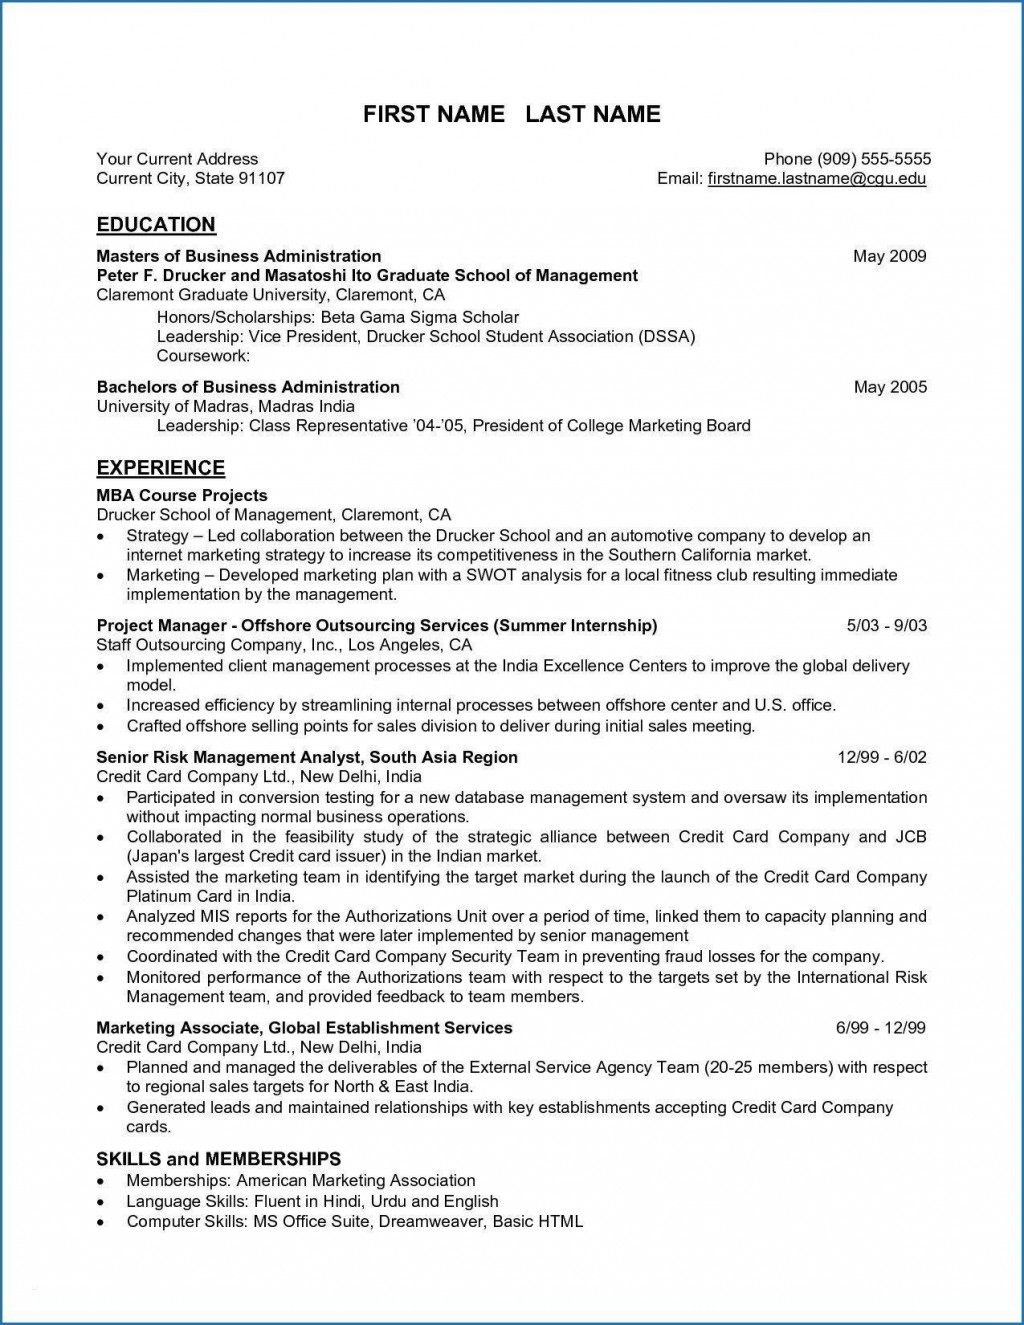 004 Remarkable Grad School Resume Template Free Photo Large